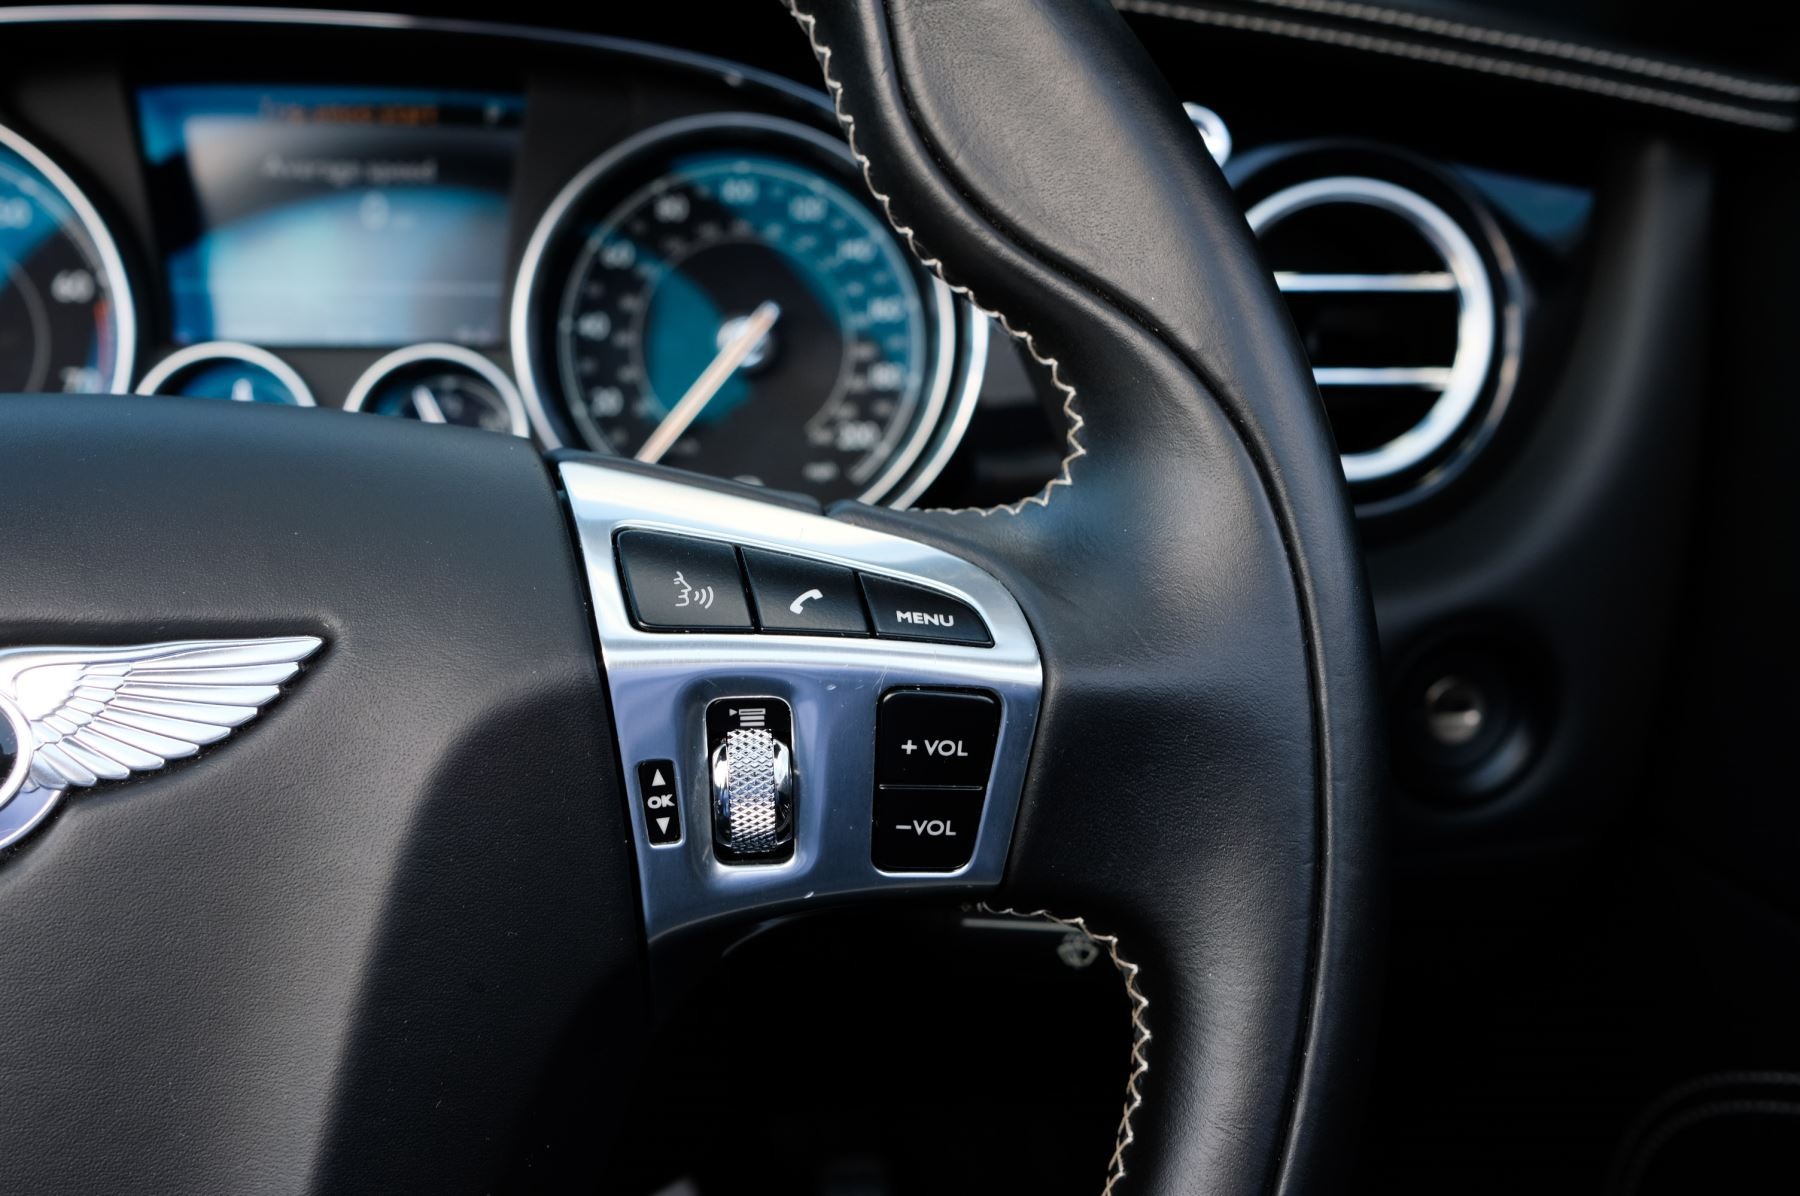 Bentley Continental GTC 4.0 V8 S Mulliner Driving Spec - Ventilated Front Seats with Massage Function image 21